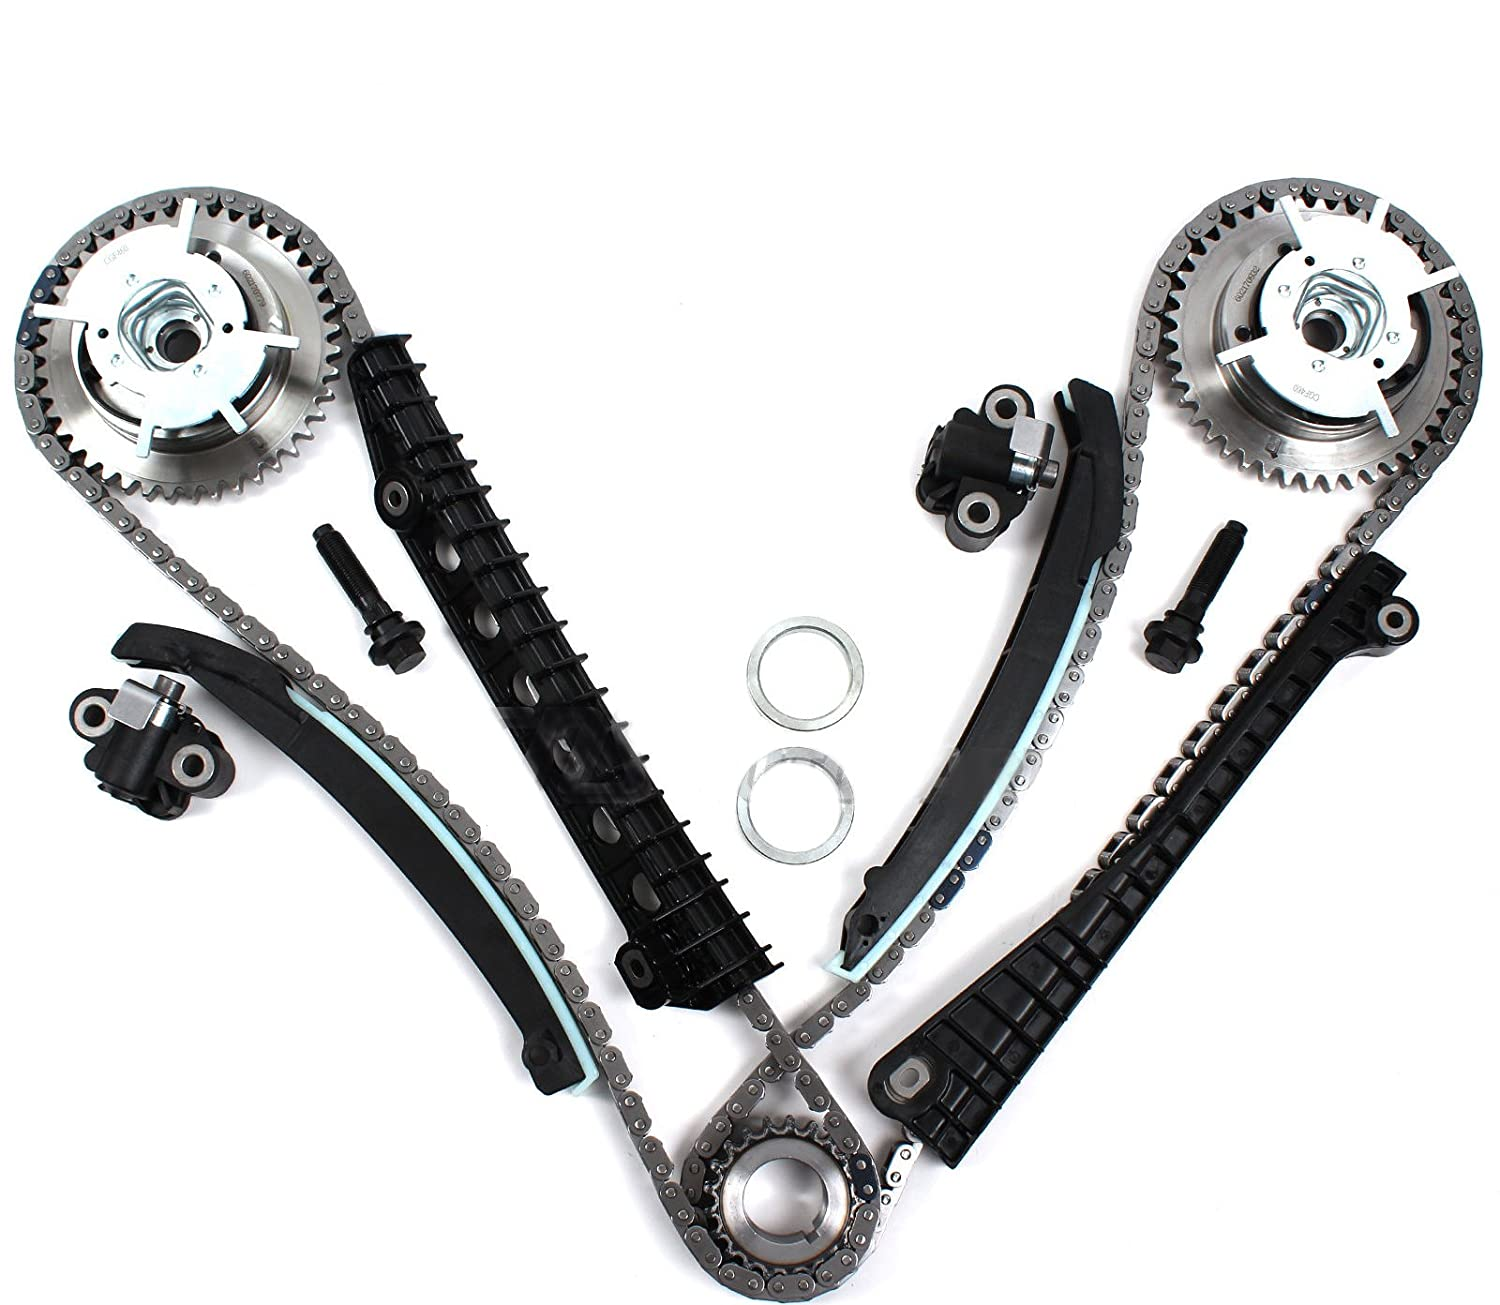 Tk3060 Vvt Timing Chain Kit Camshaft Phasers With 2002 Jeep Liberty 37 Have You Got A Diagram For The Engine Mounting Bolts Both Left Right Side 04 08 Ford 54l 3 Valve Expedition F 150